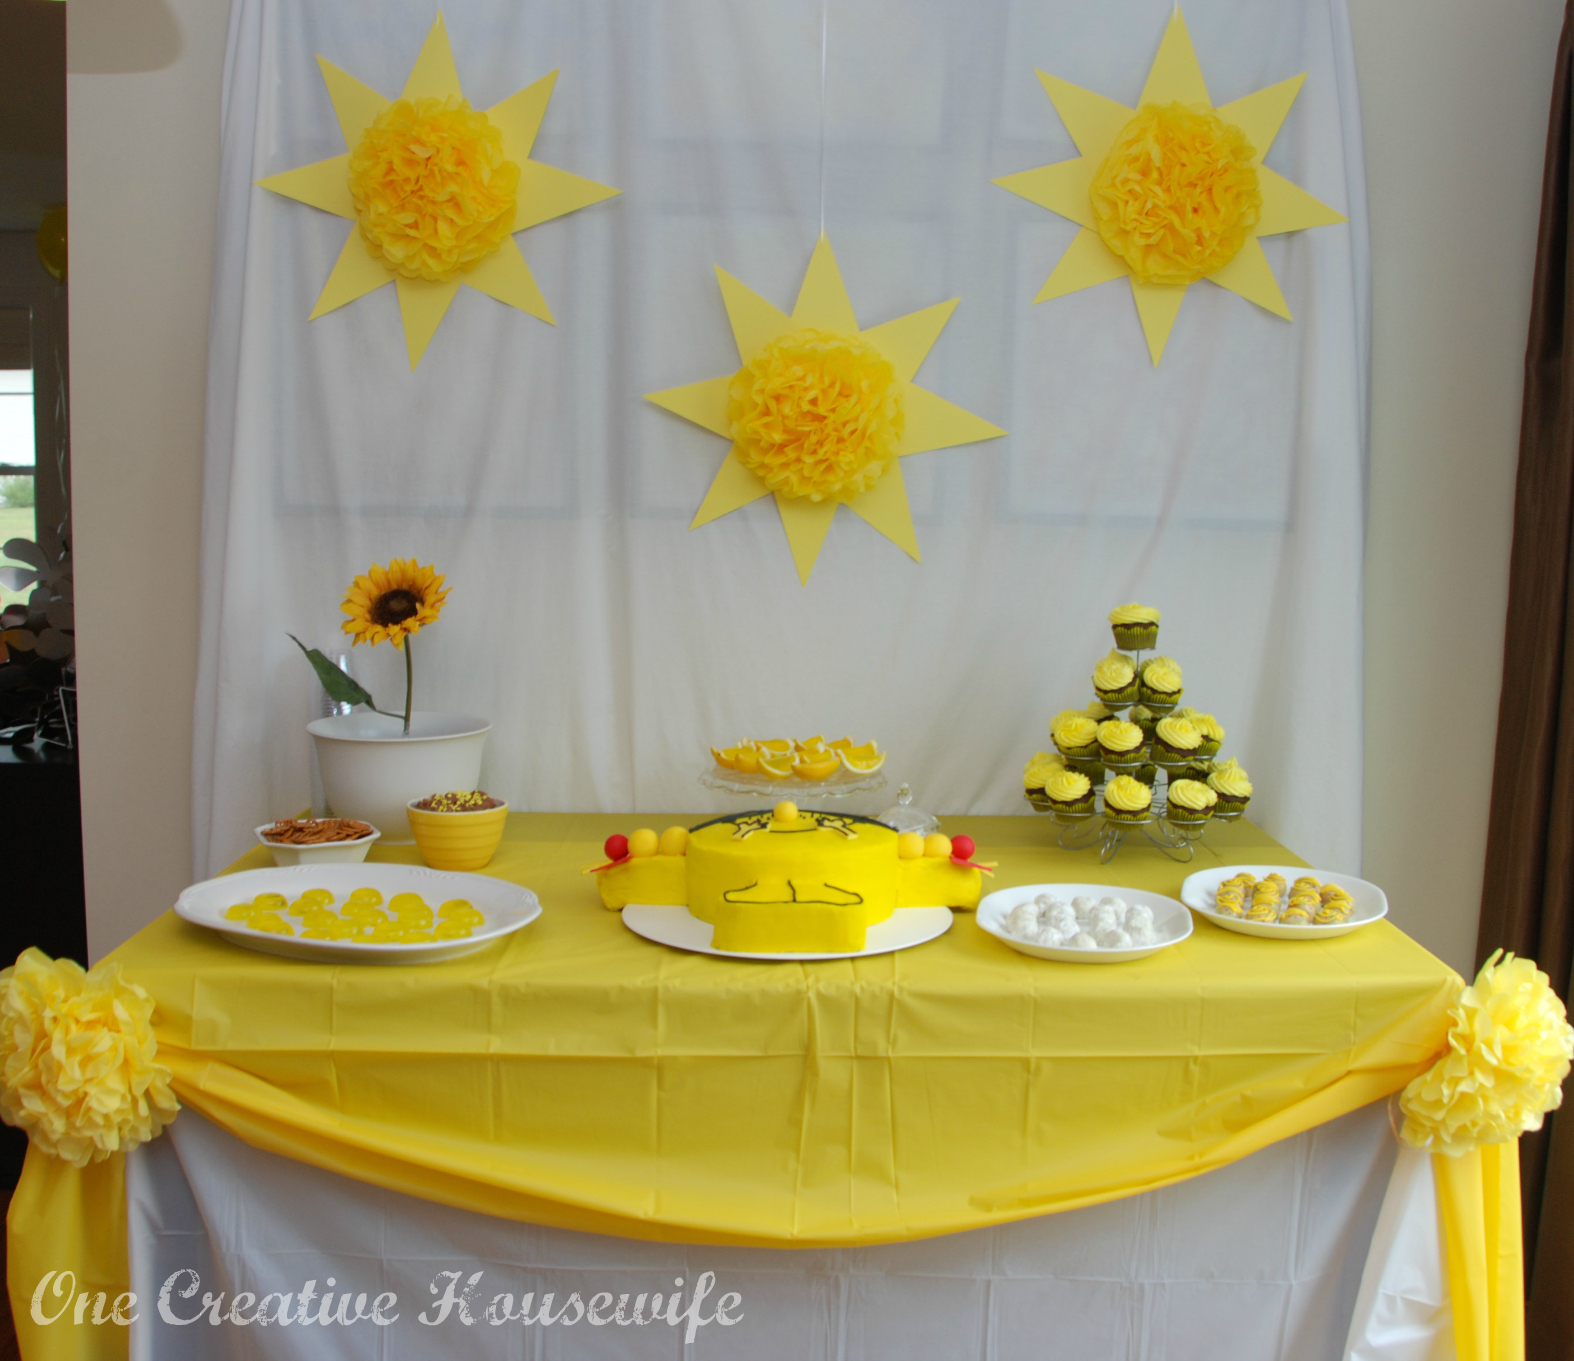 One Creative Housewife: Little Miss Sunshine Party {Part 1